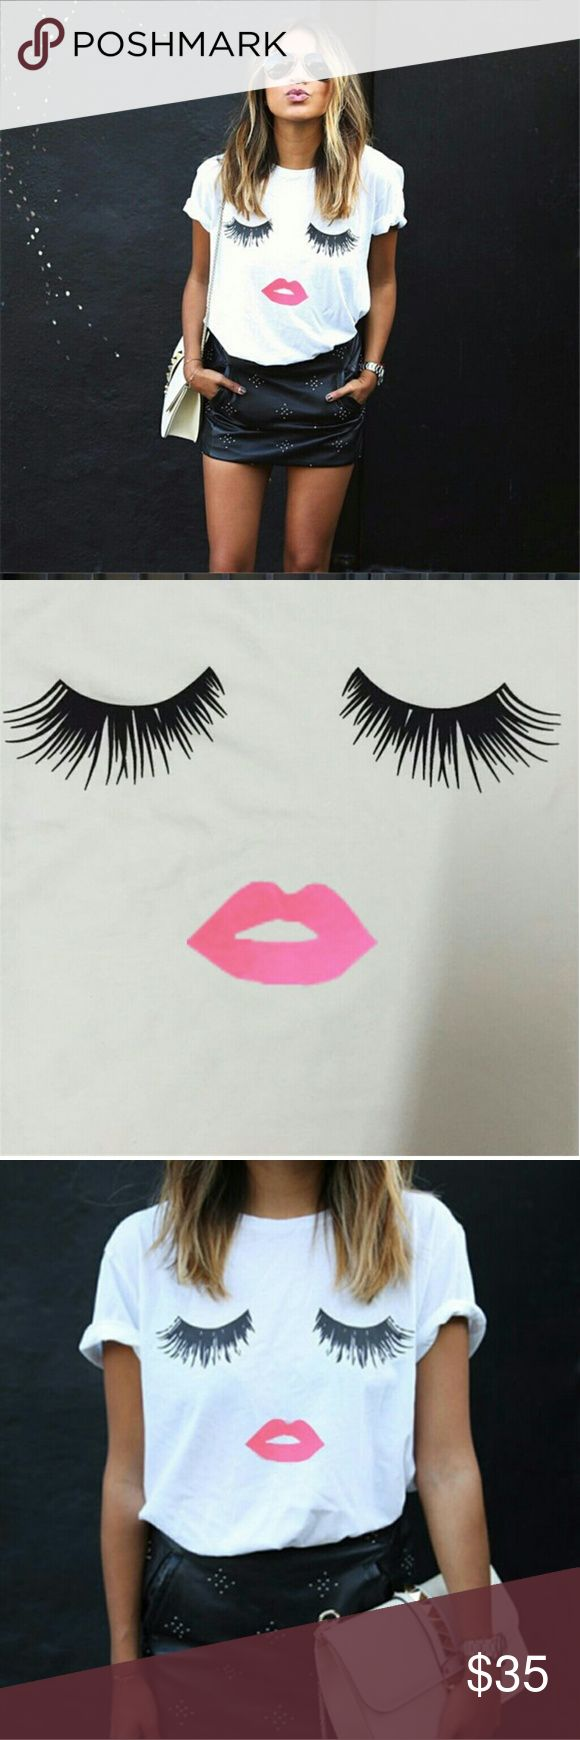 Kissy face tee shirt Cute kissy face tee shirt Short sleeve  Limited quantities   BOUTIQUE PRICES FIRM Tops Tees - Short Sleeve